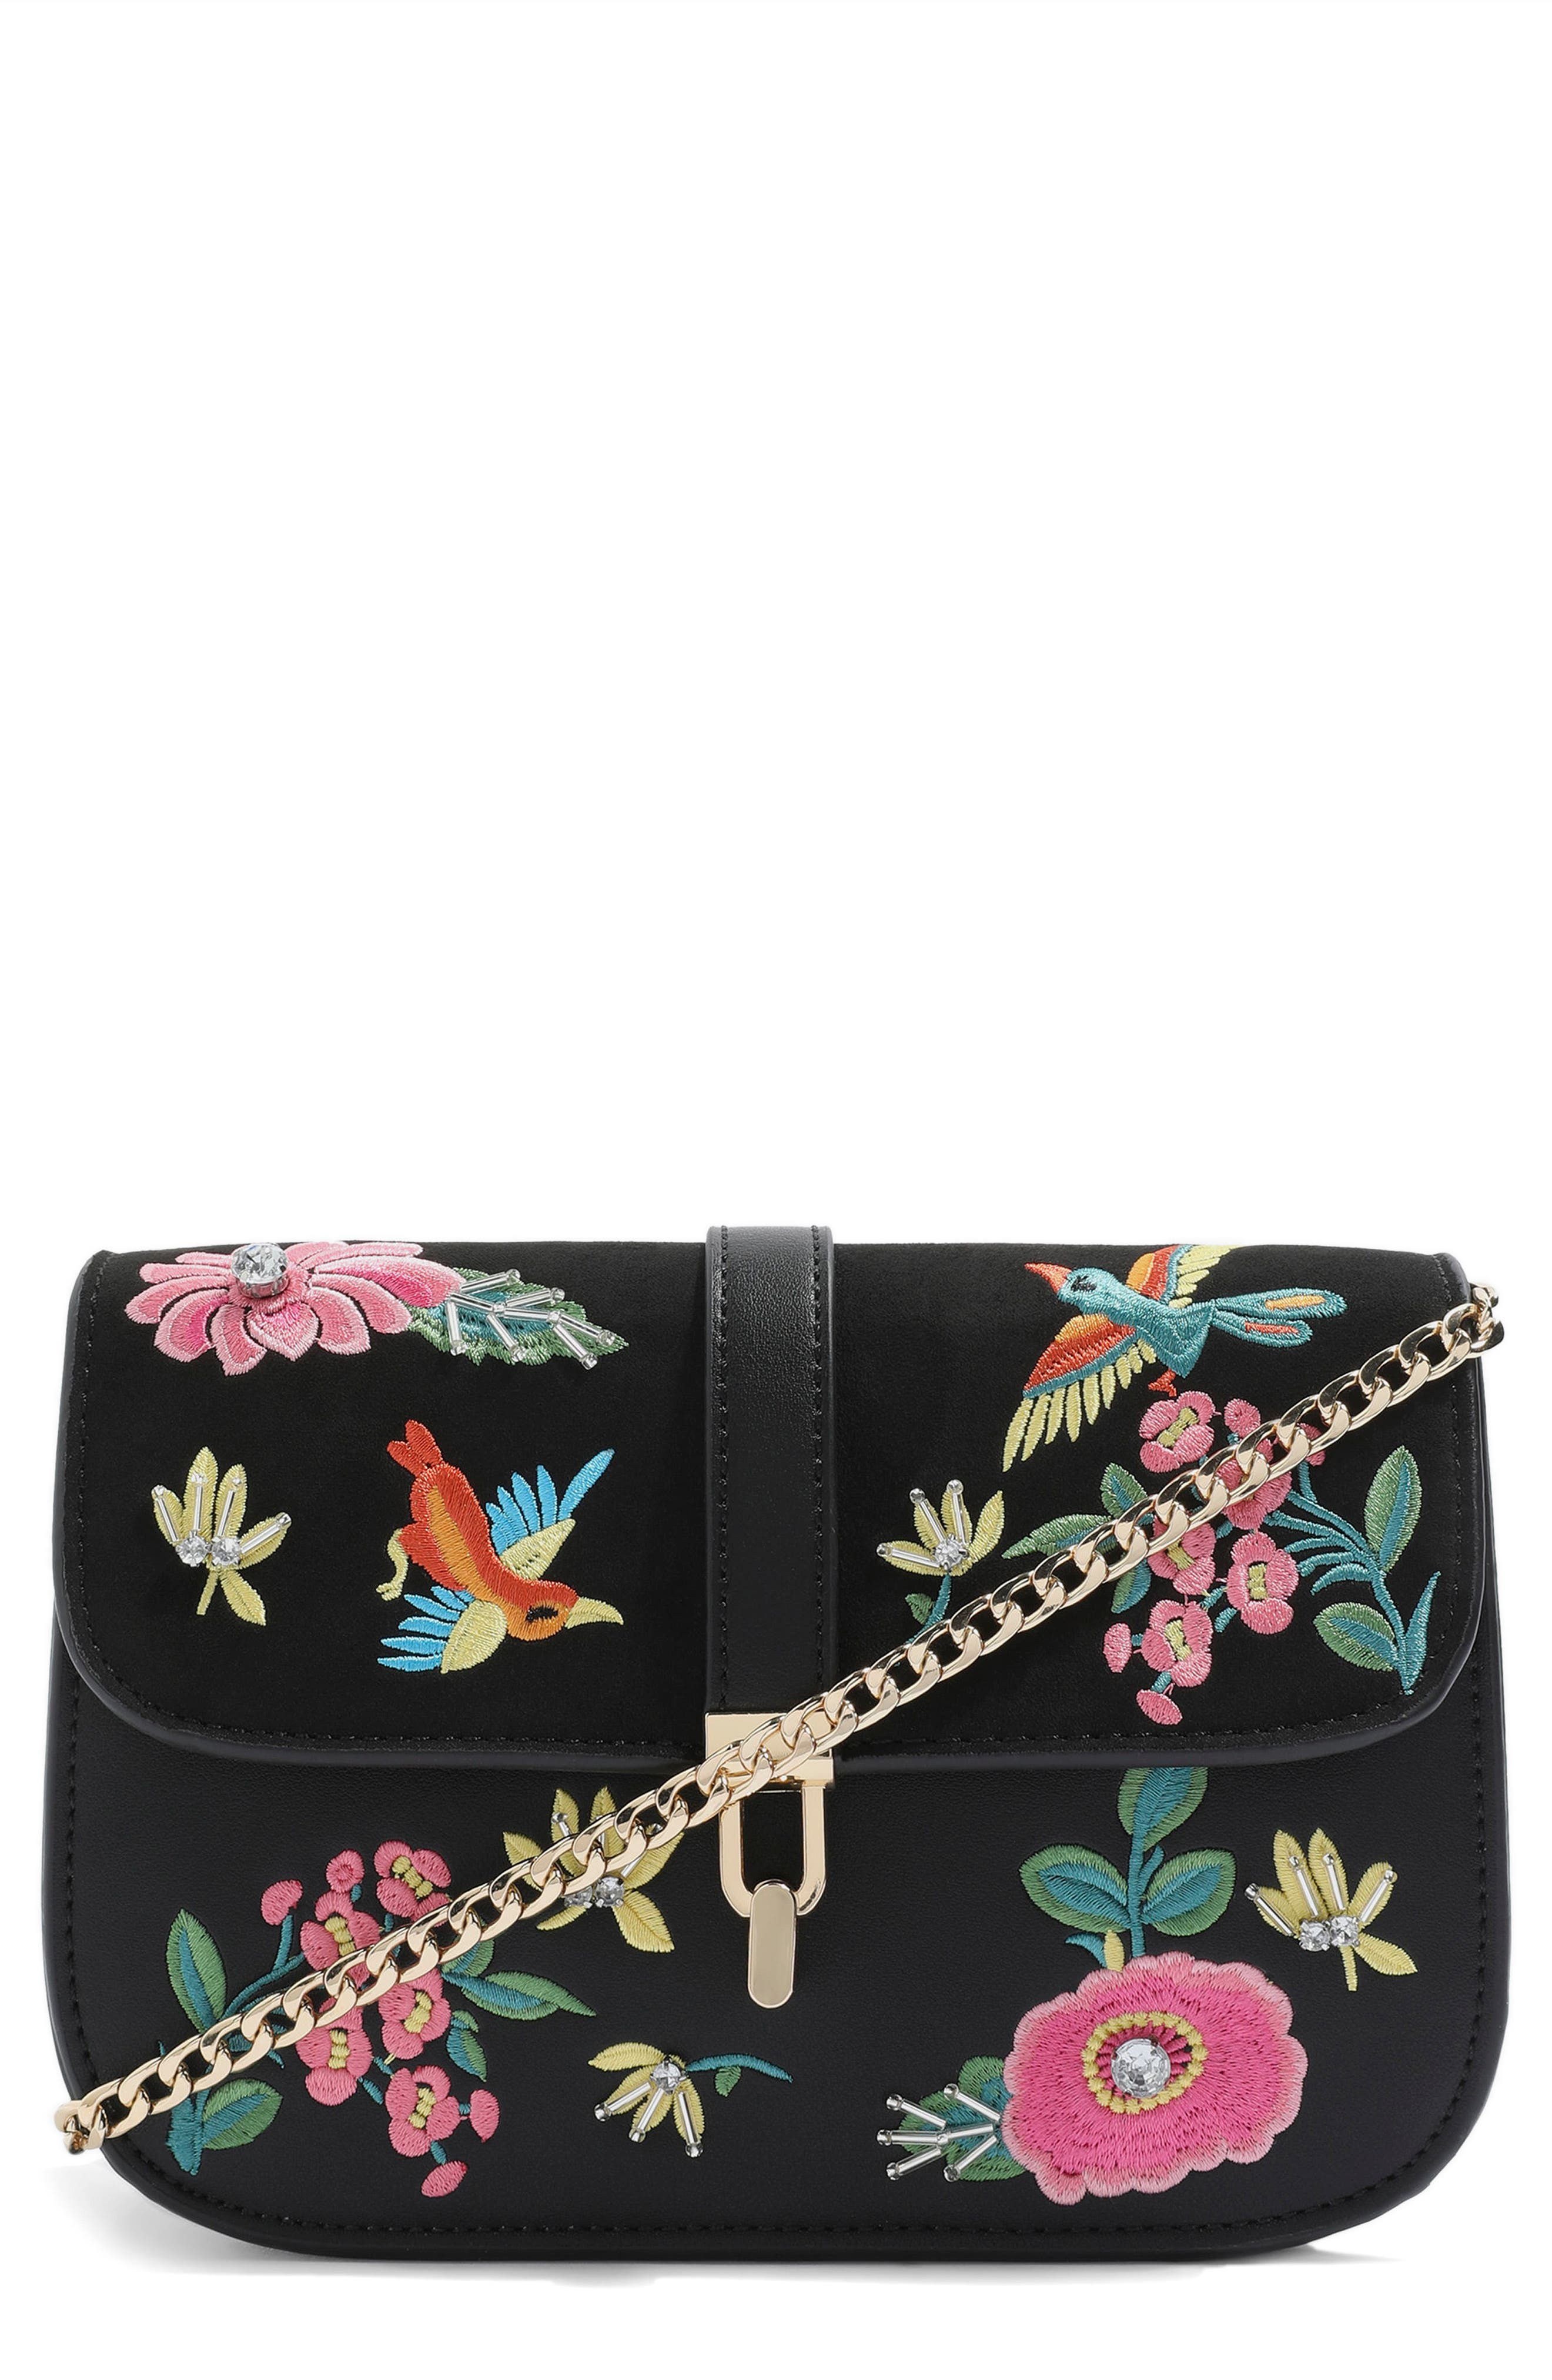 Hummingbird Embroidered Crossbody Bag,                         Main,                         color, 001